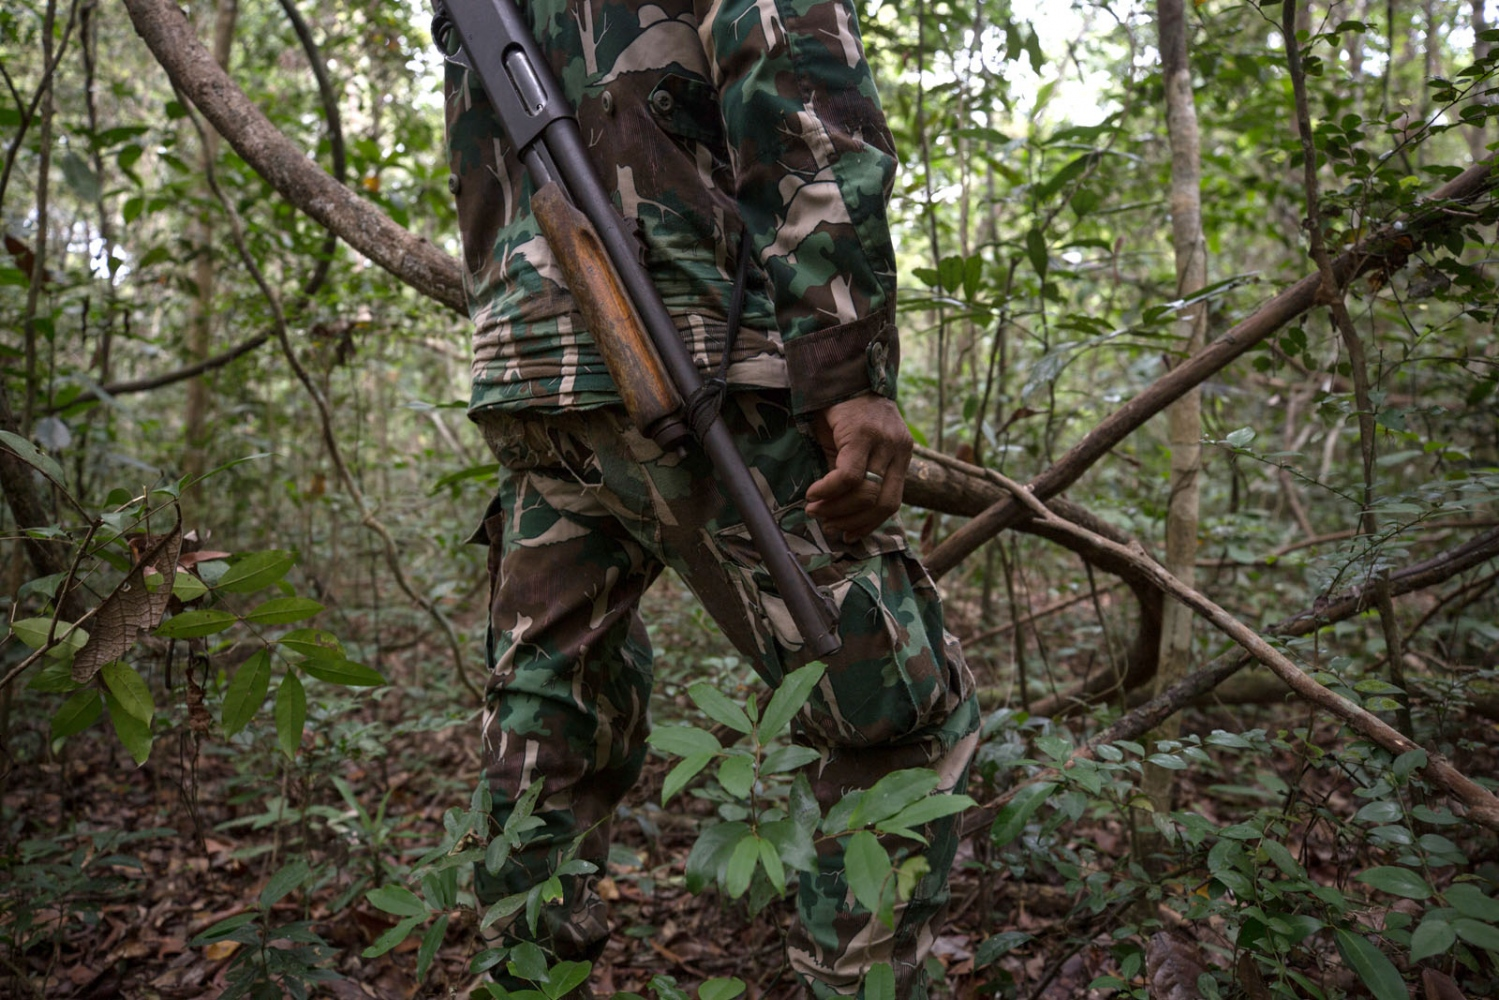 A Thai forest ranger with his old shotgun stands alert listening for sounds whilst on patrol. Ta Praya National Park, Sa Kaew Province - June 2018